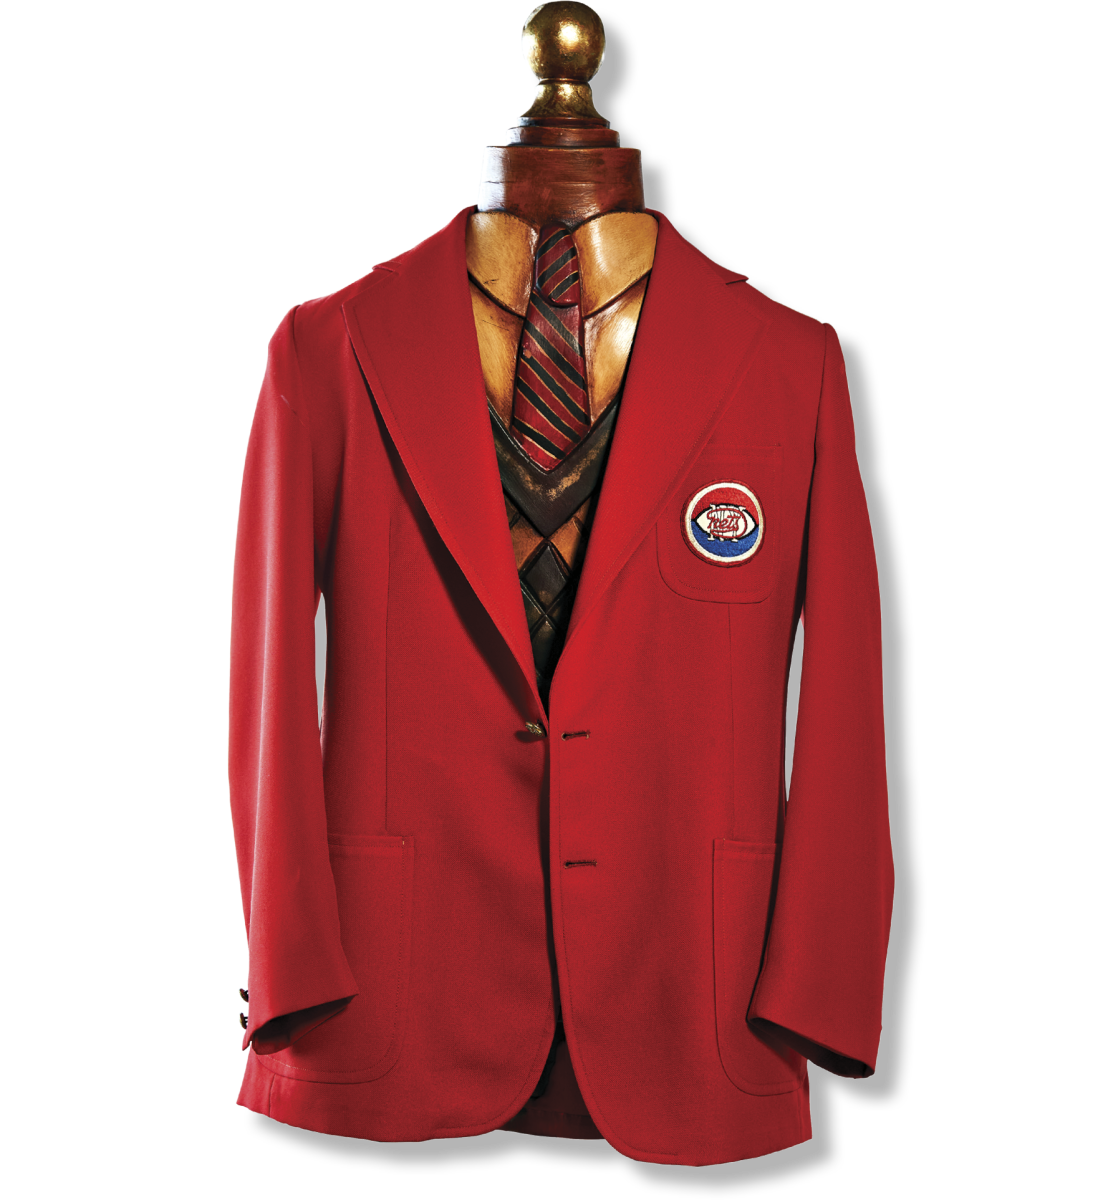 BLAZER Turetzky was easy to find during the '76 championship locker room celebration thanks to the bright-red blazer he wore, which no longer smells of champagne.